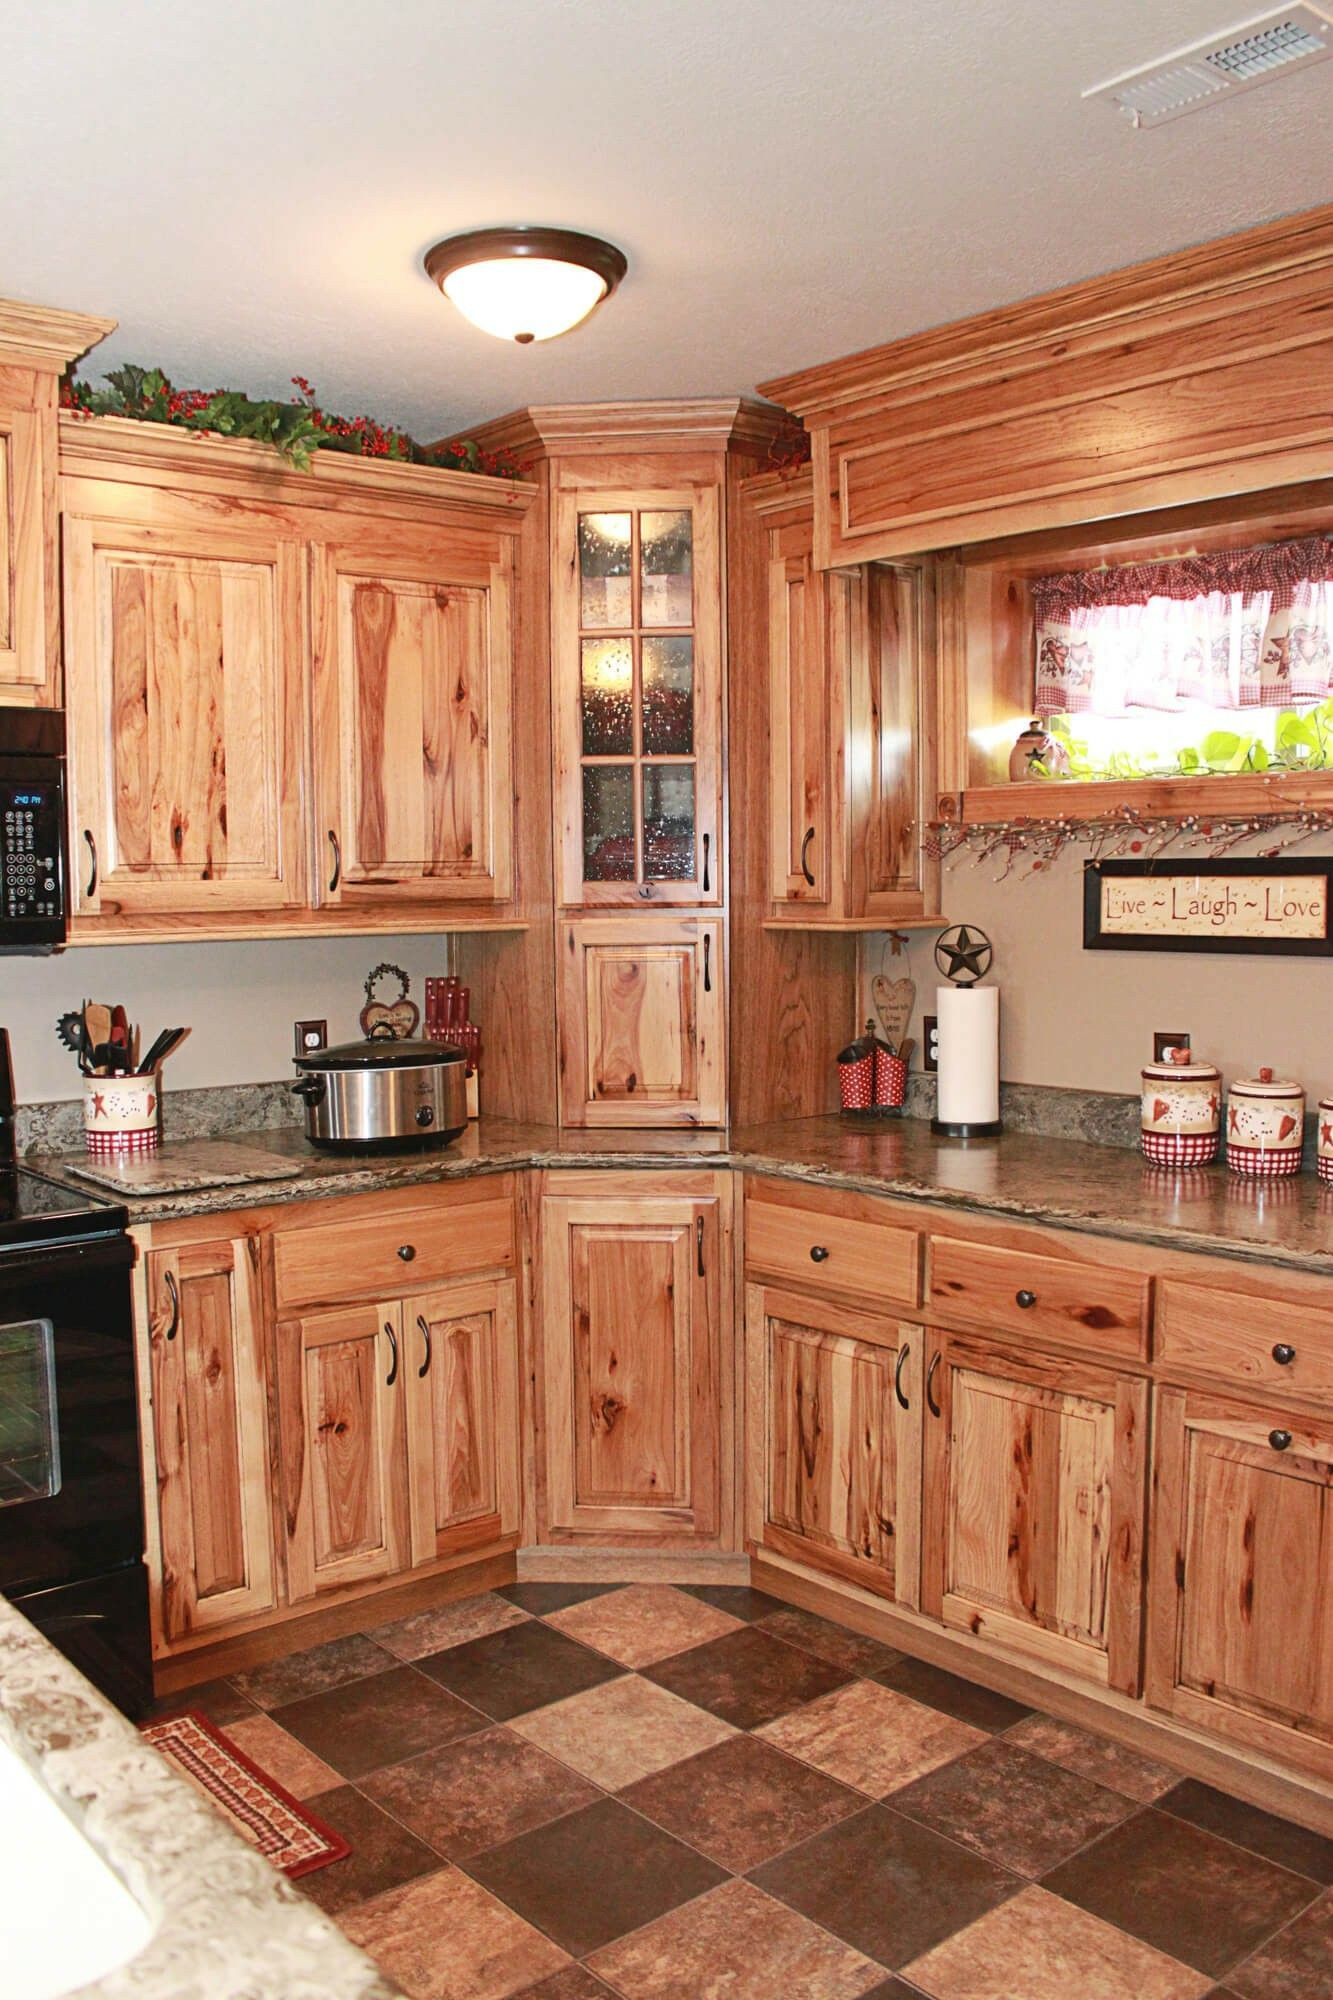 15 Best Rustic Kitchen Cabinet Ideas And Design Gallery Looking For More Rustic  Kitchen Cabinet Photos